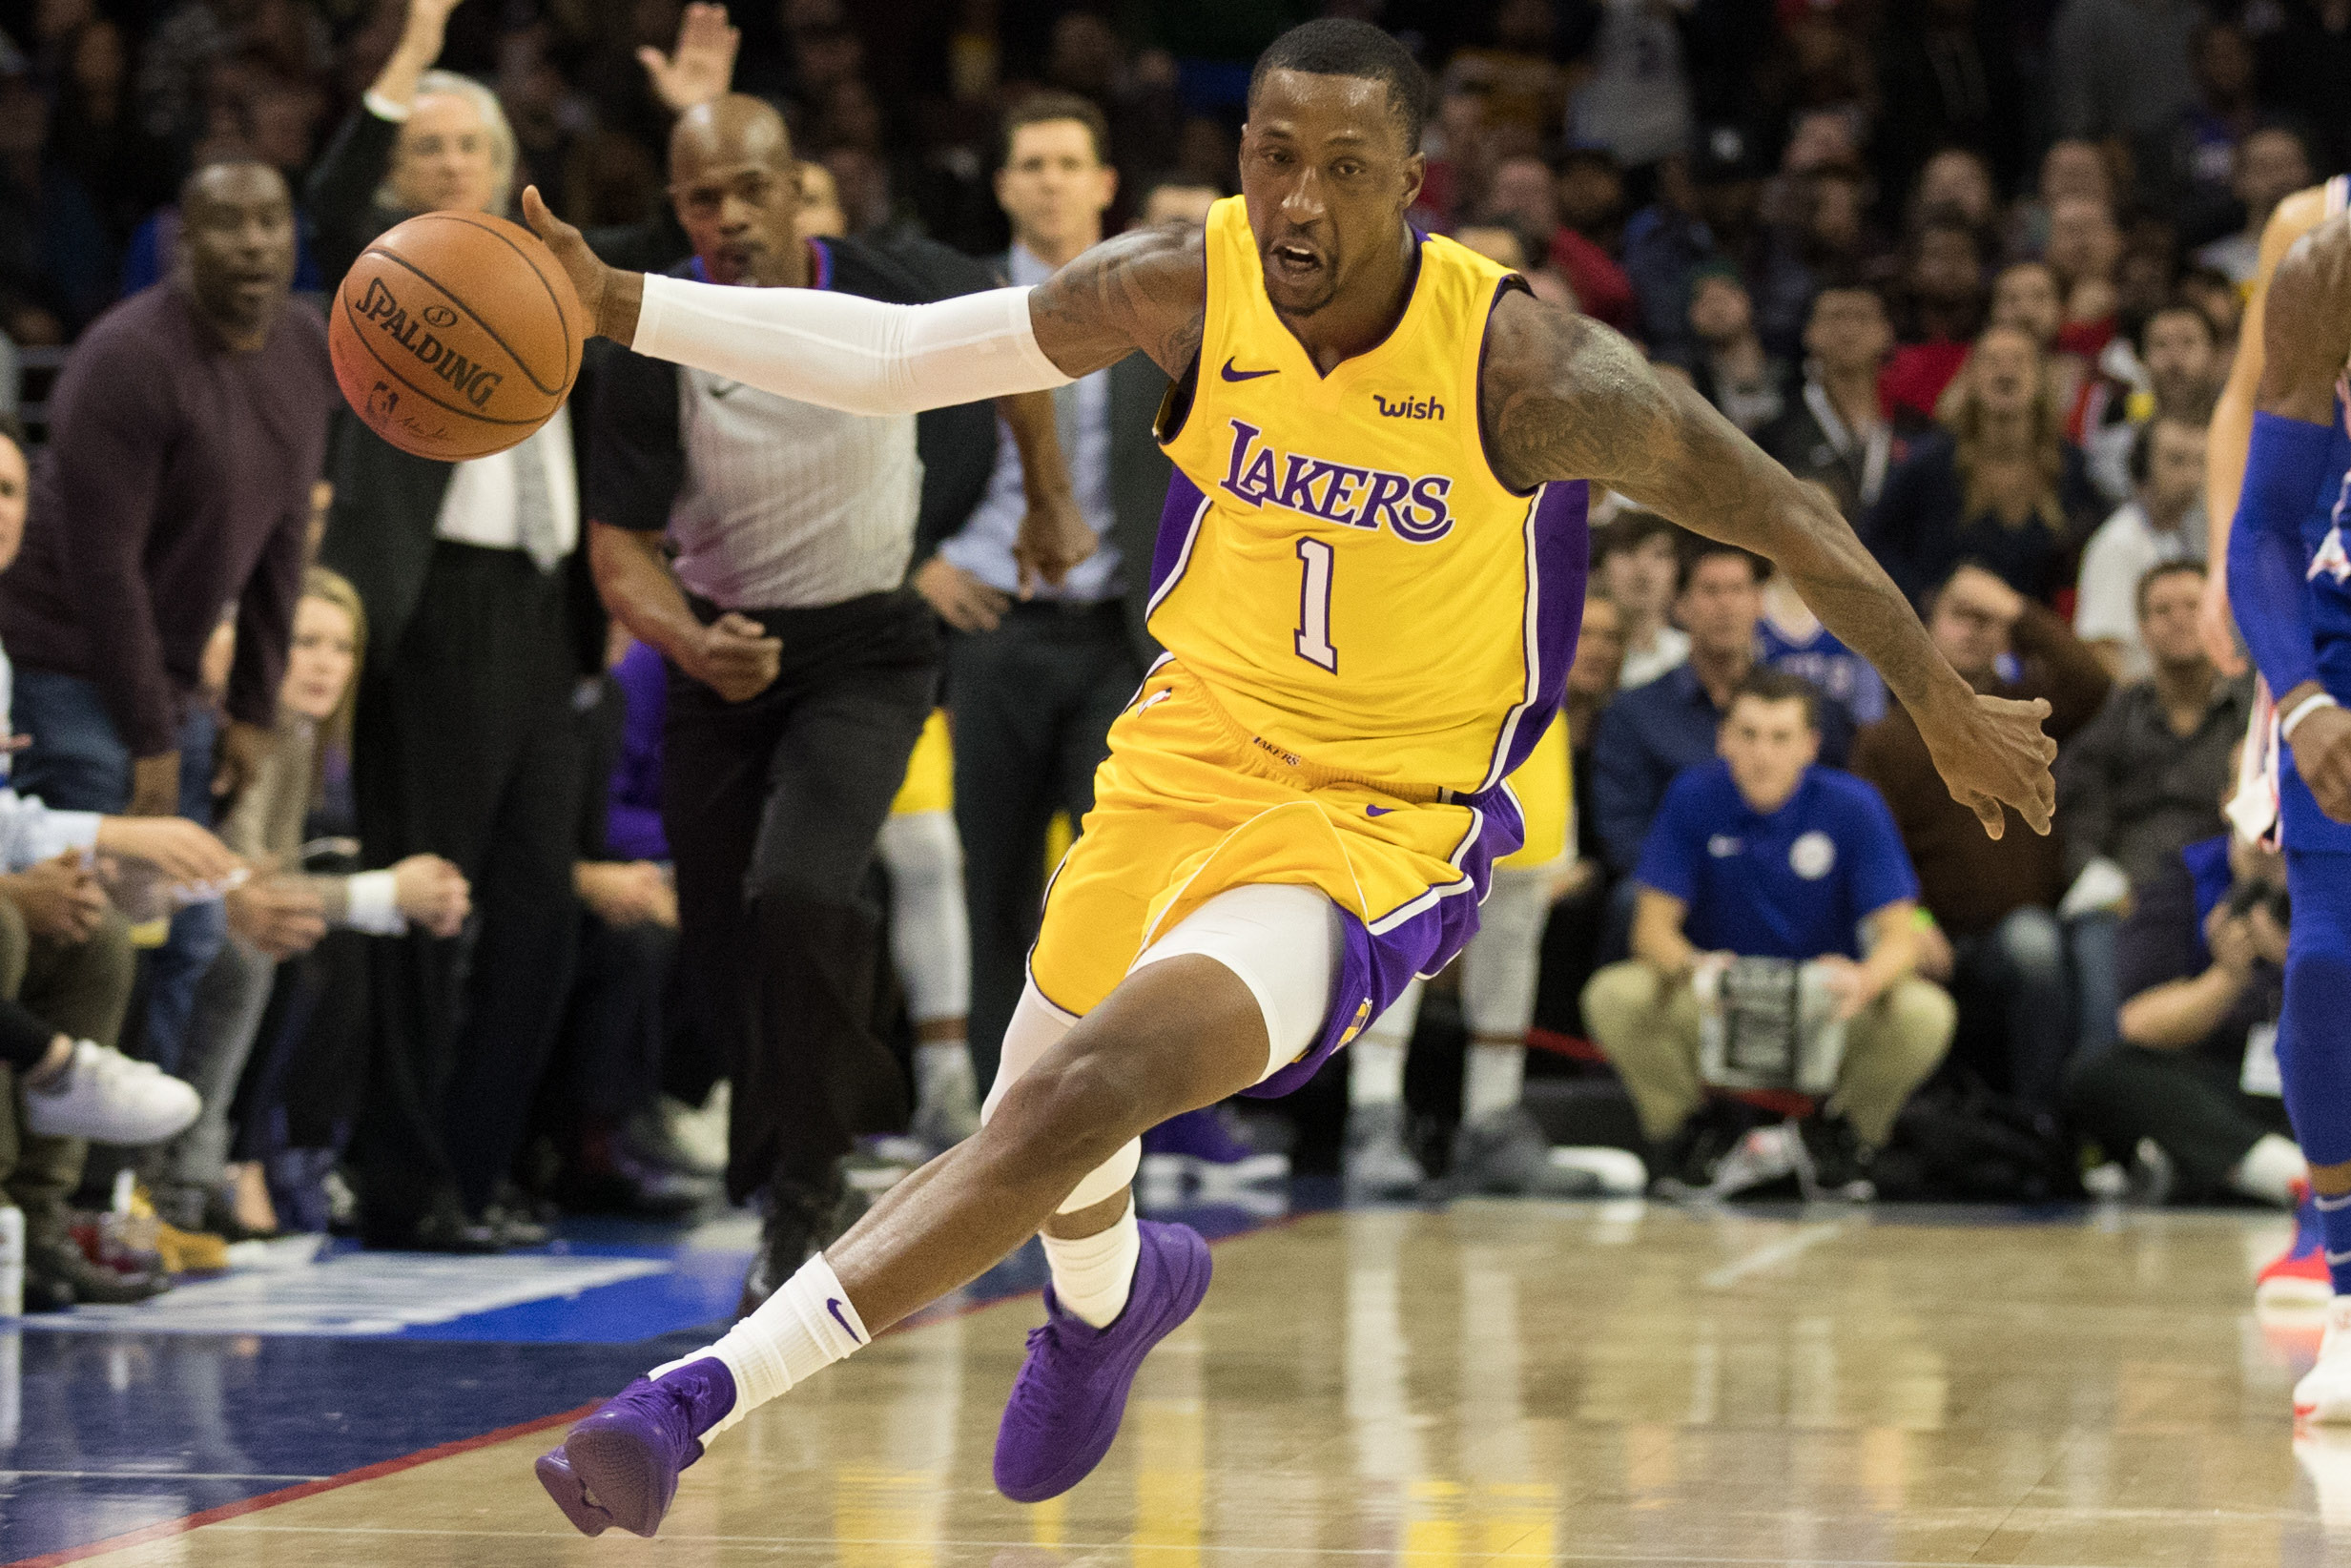 Caldwell-Pope missed game because of travel restrictions